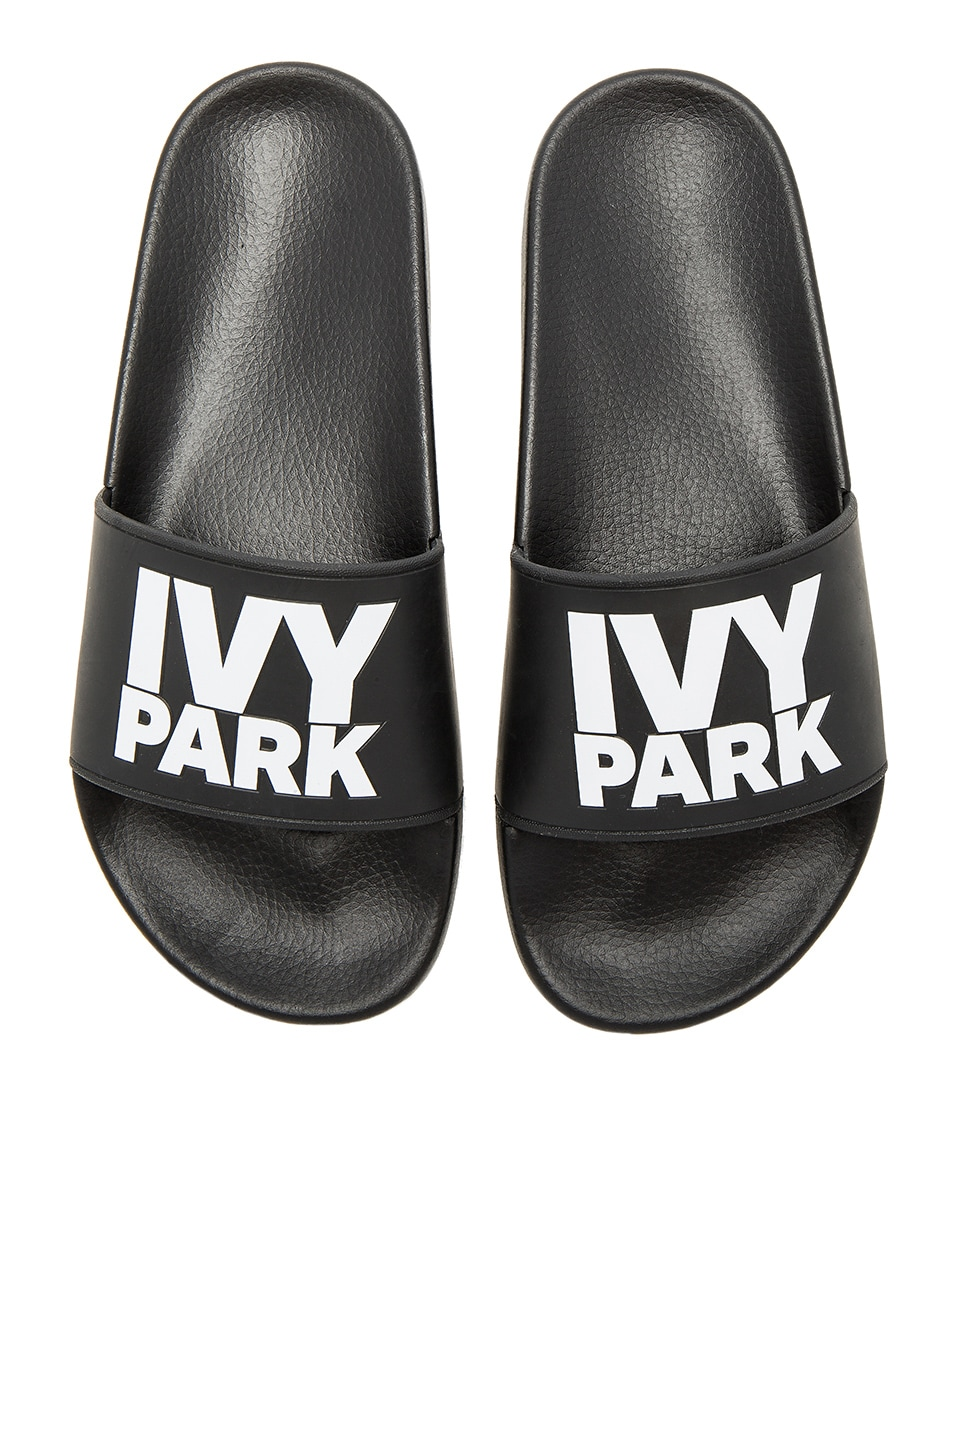 IVY PARK Logo Sliders in Black & White